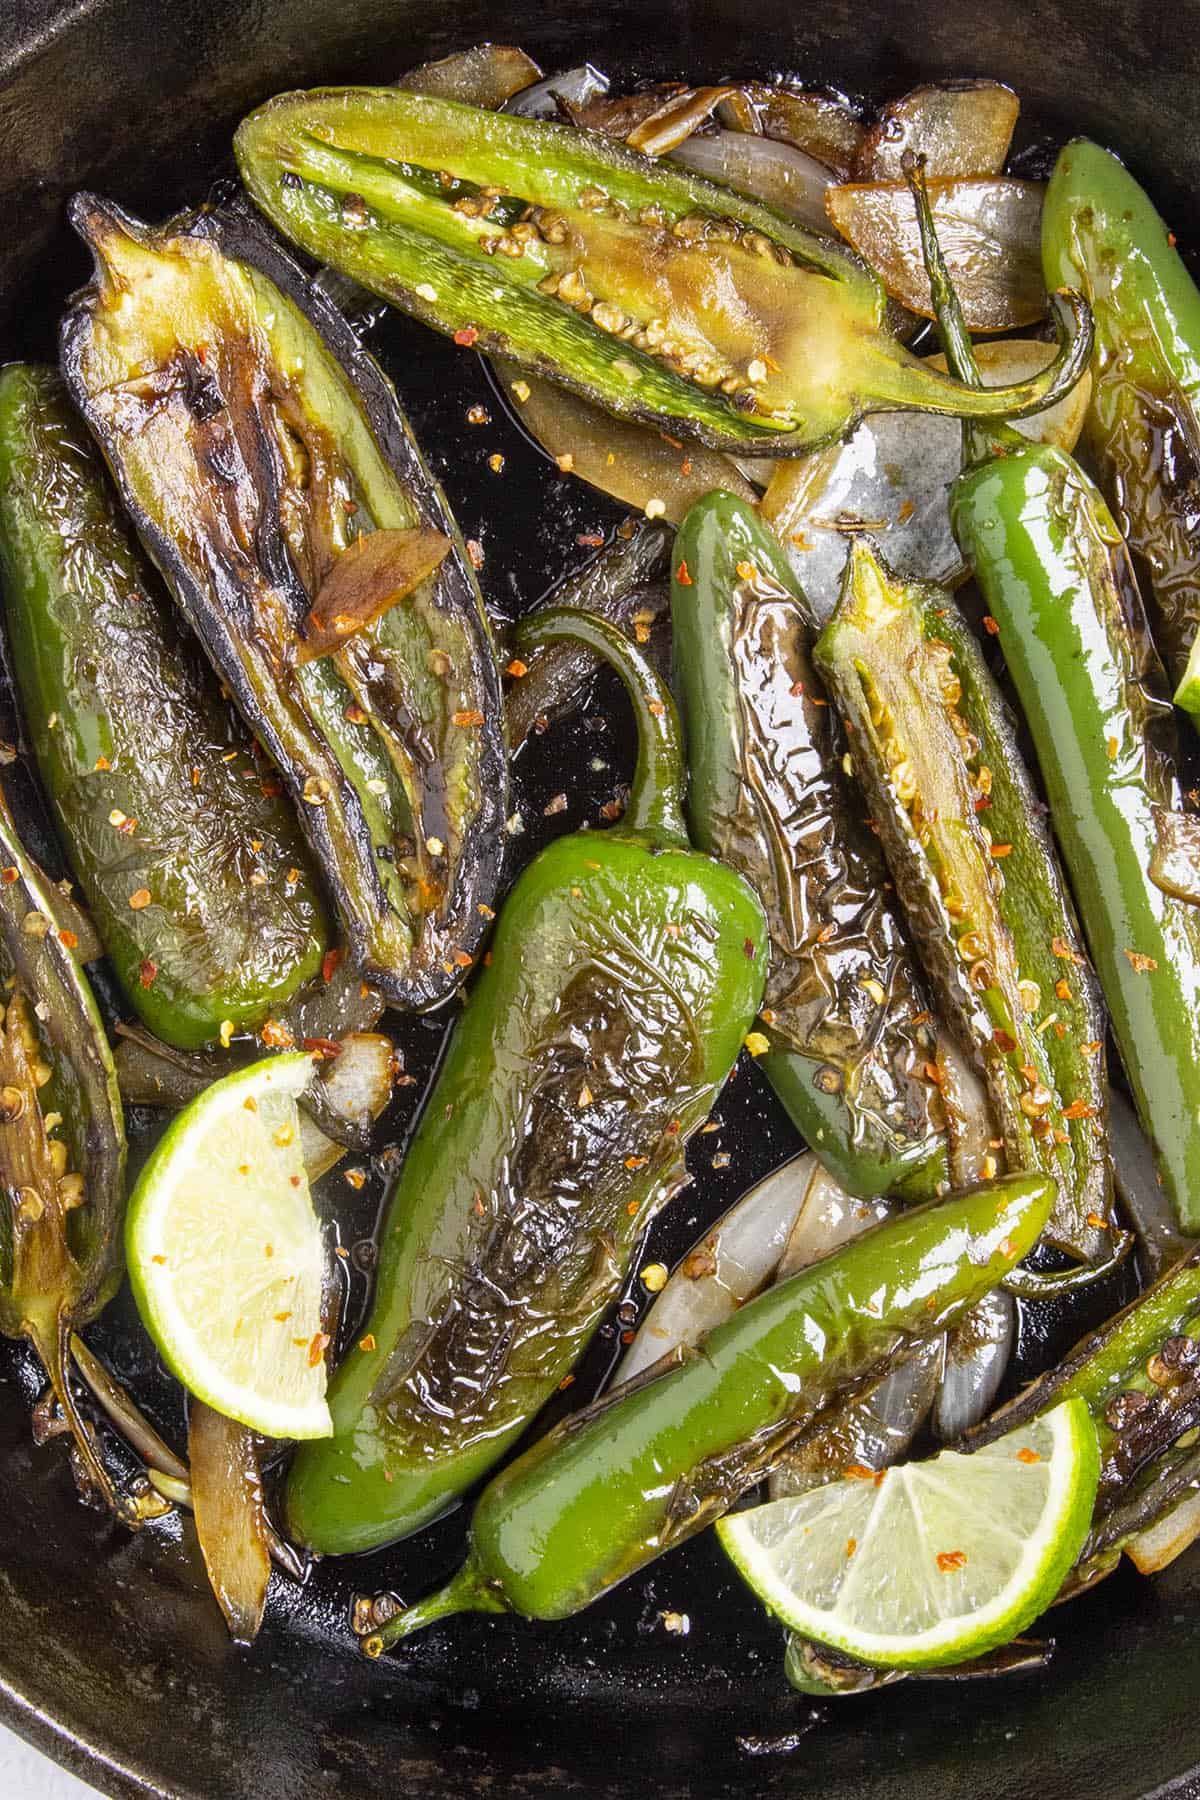 Chiles Toreados, or blistered chiles, in a pan